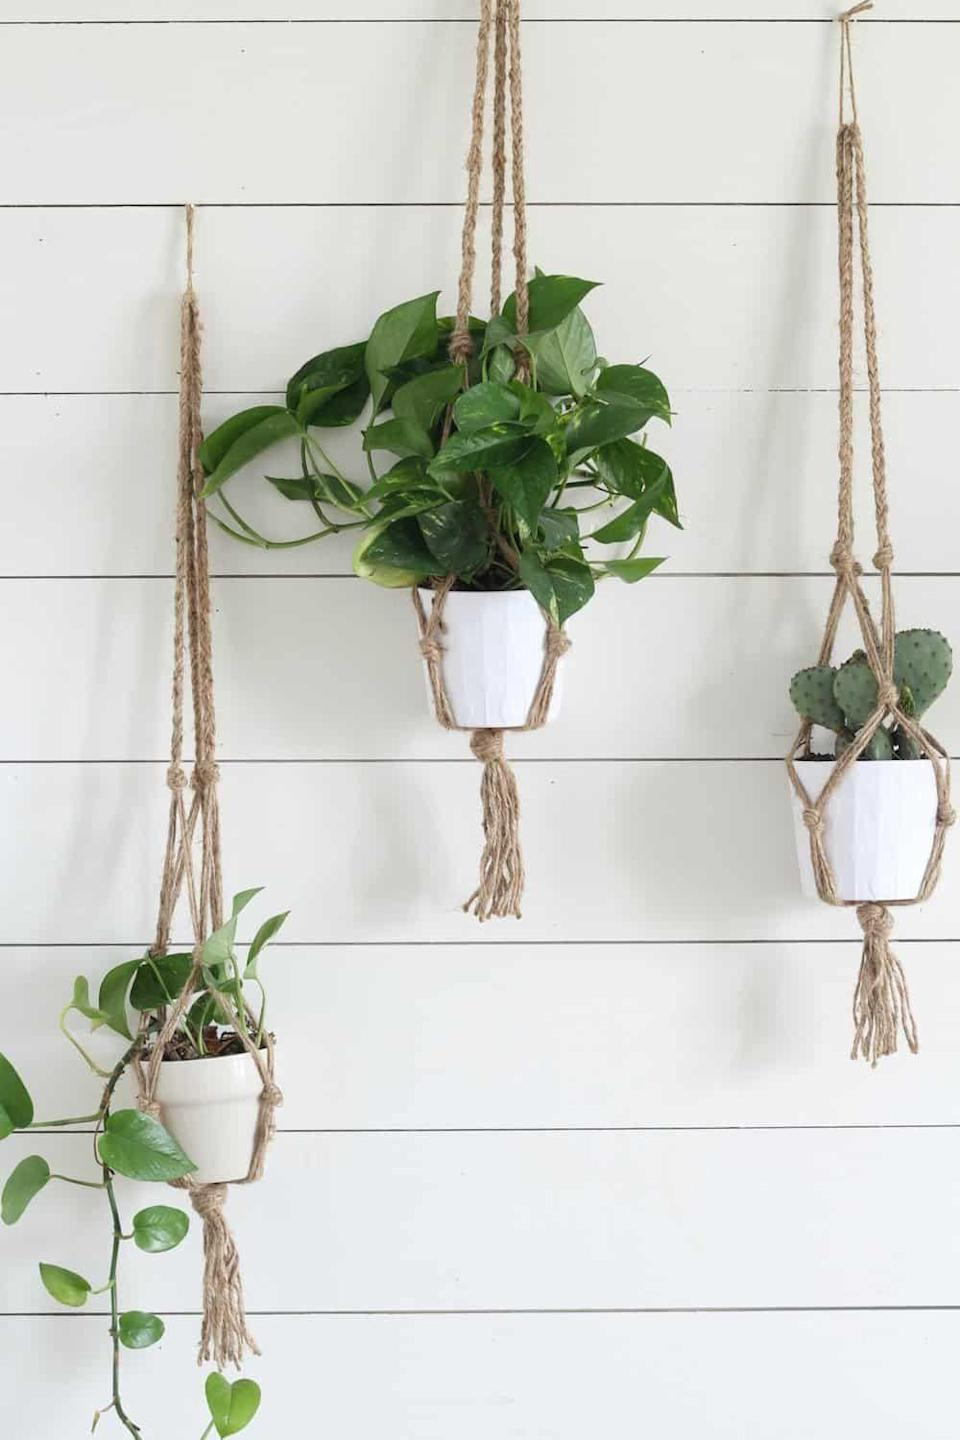 """<p><strong>CRAZY PLANT BAE</strong></p><p>crazyplantbae.com</p><p><strong>$27.99</strong></p><p><a href=""""https://www.crazyplantbae.com/collections/products/products/3-macrame-planter"""" rel=""""nofollow noopener"""" target=""""_blank"""" data-ylk=""""slk:Shop Now"""" class=""""link rapid-noclick-resp"""">Shop Now</a></p><p>The hanging planter is an actual classic. This set of three is suuuper minimal and will look great in any boho-themed aesthetic.</p>"""